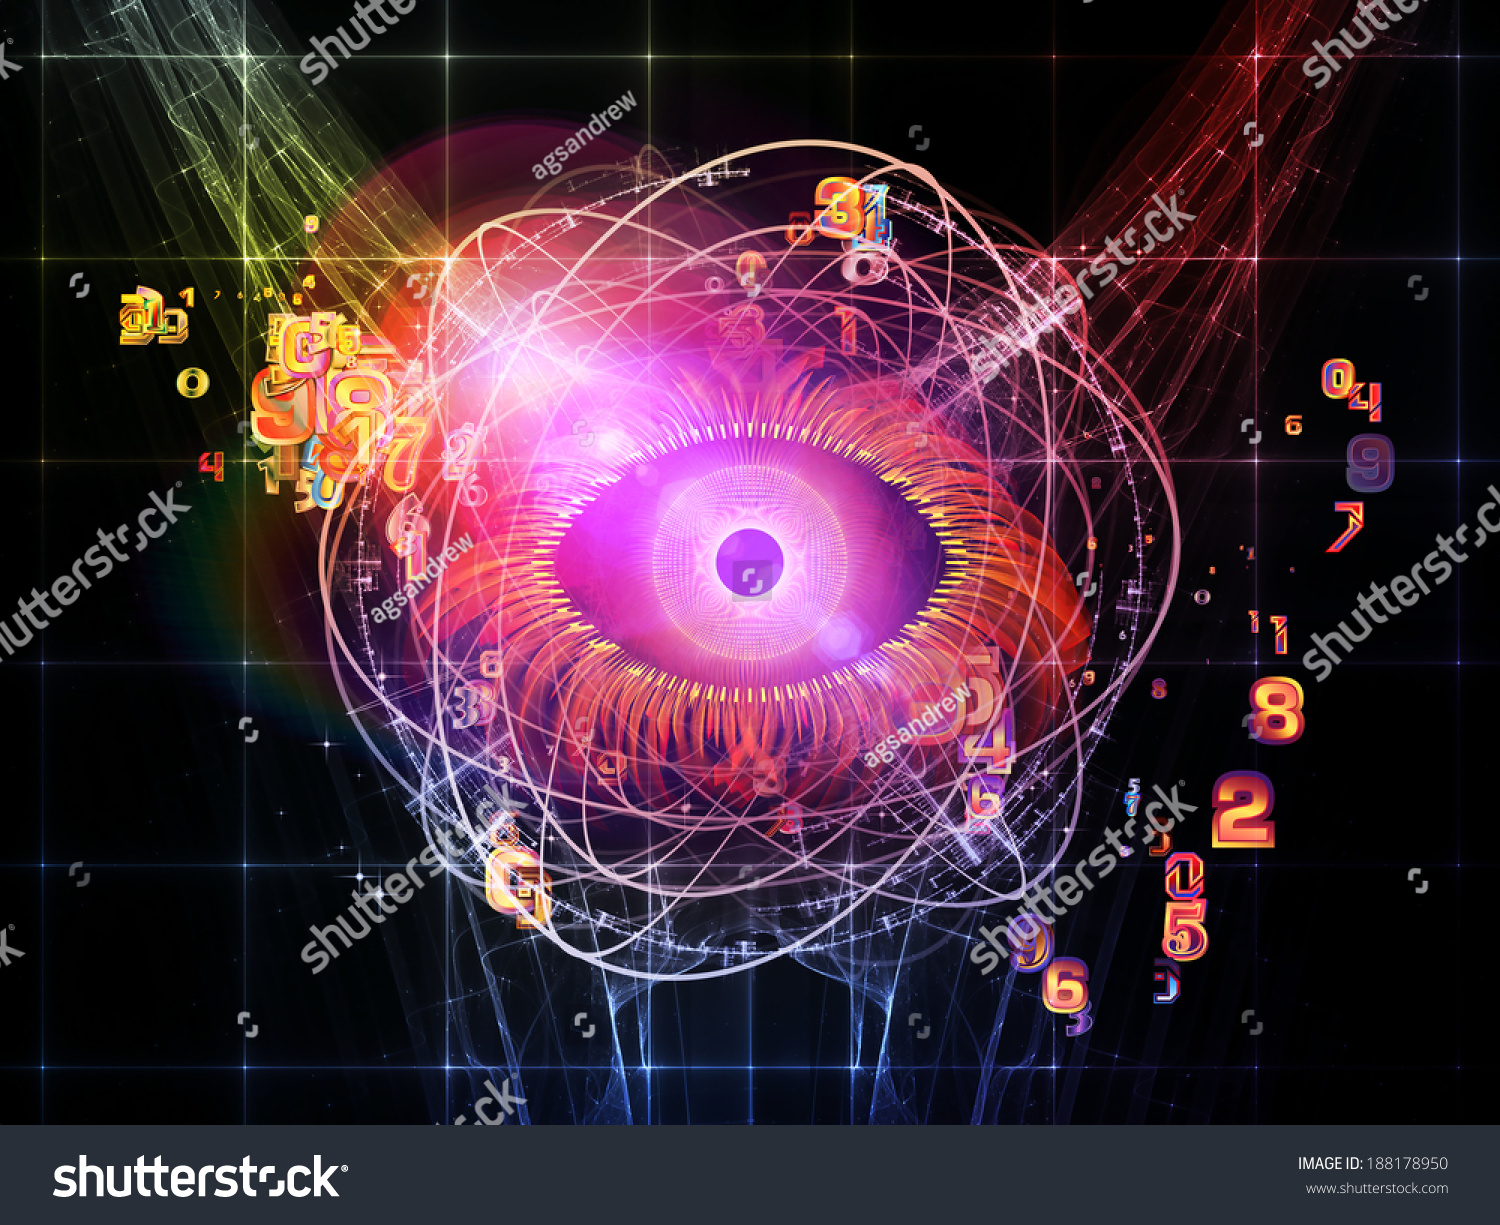 hight resolution of eye particle series design composed of eye shape numbers and fractal elements as a